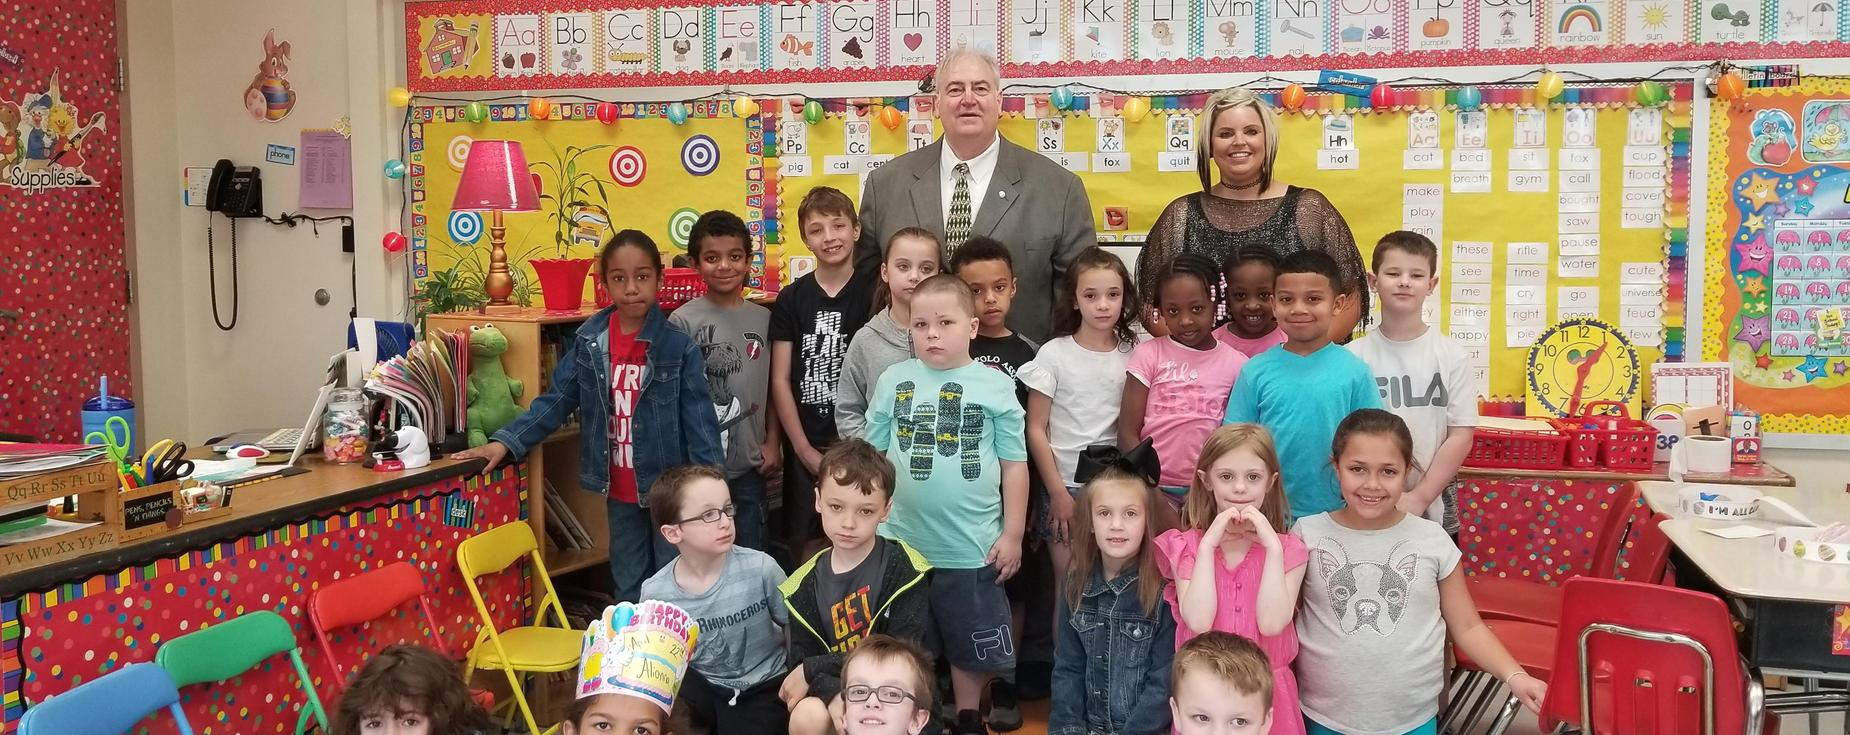 Superintendent Pallone visits with Ms. Heavner's first grade students